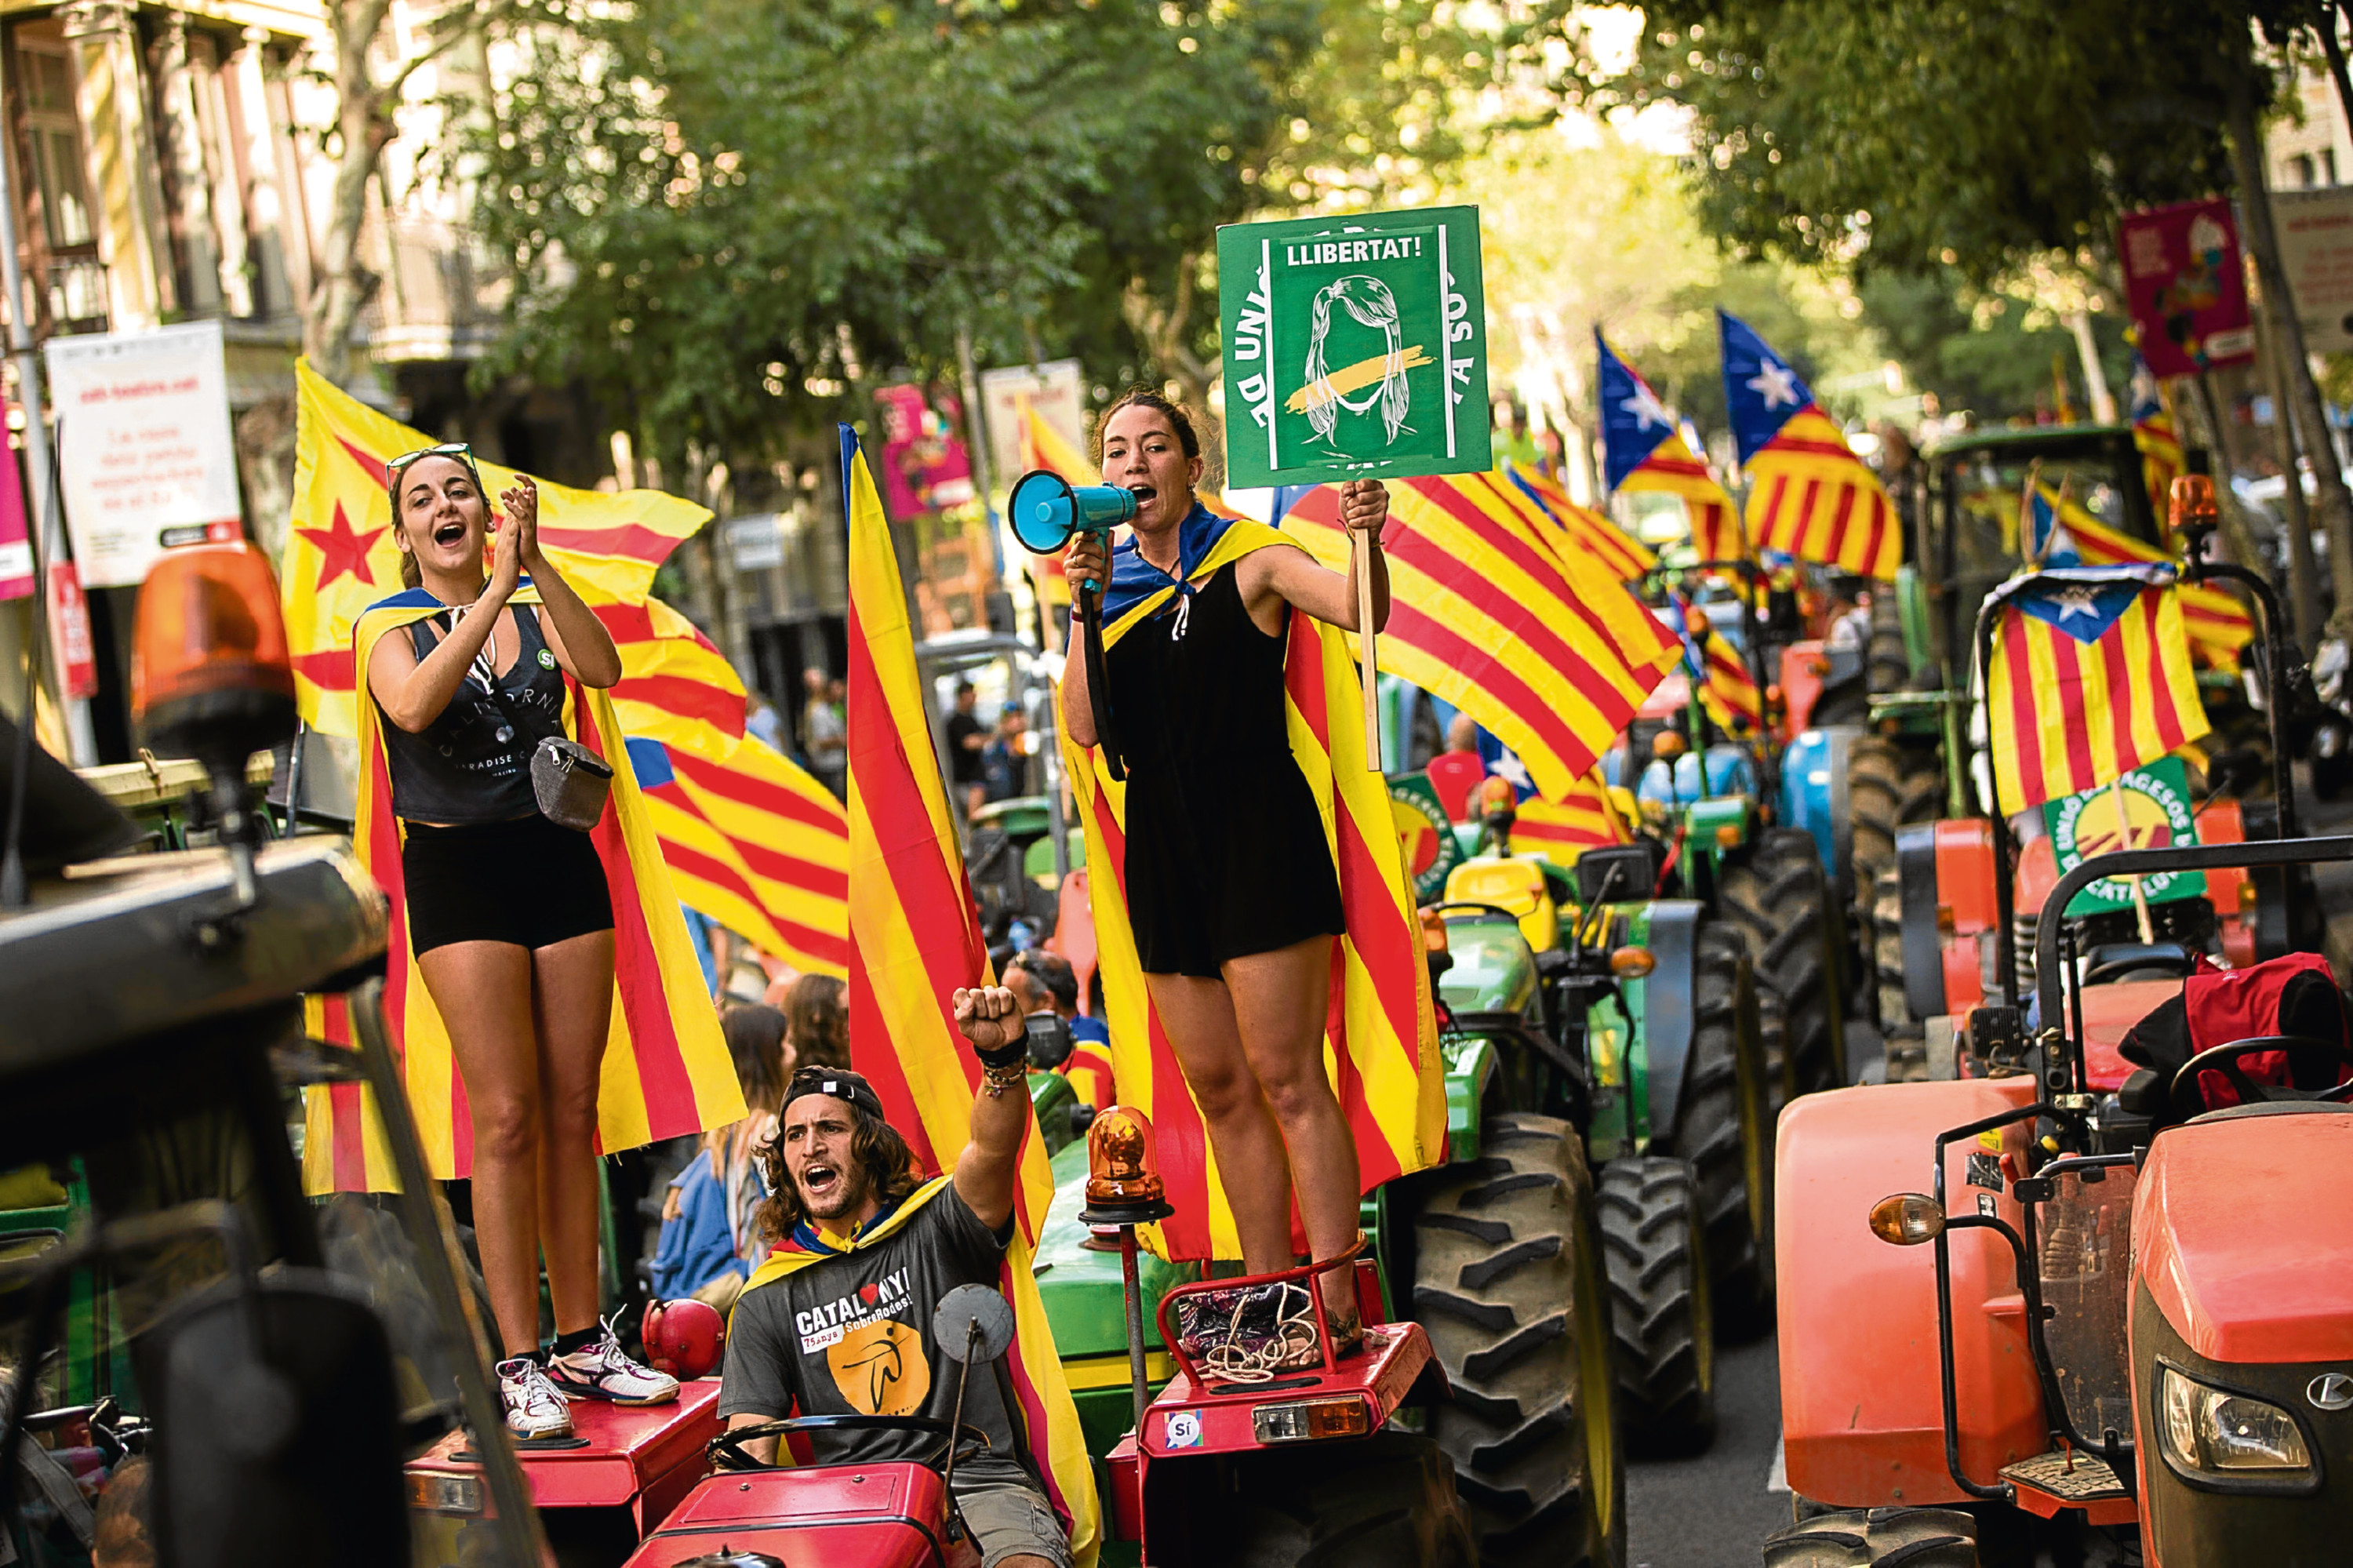 People with the estelada, or independence flags, shout slogans on top of parked tractors during a protest by farmers in Barcelona.